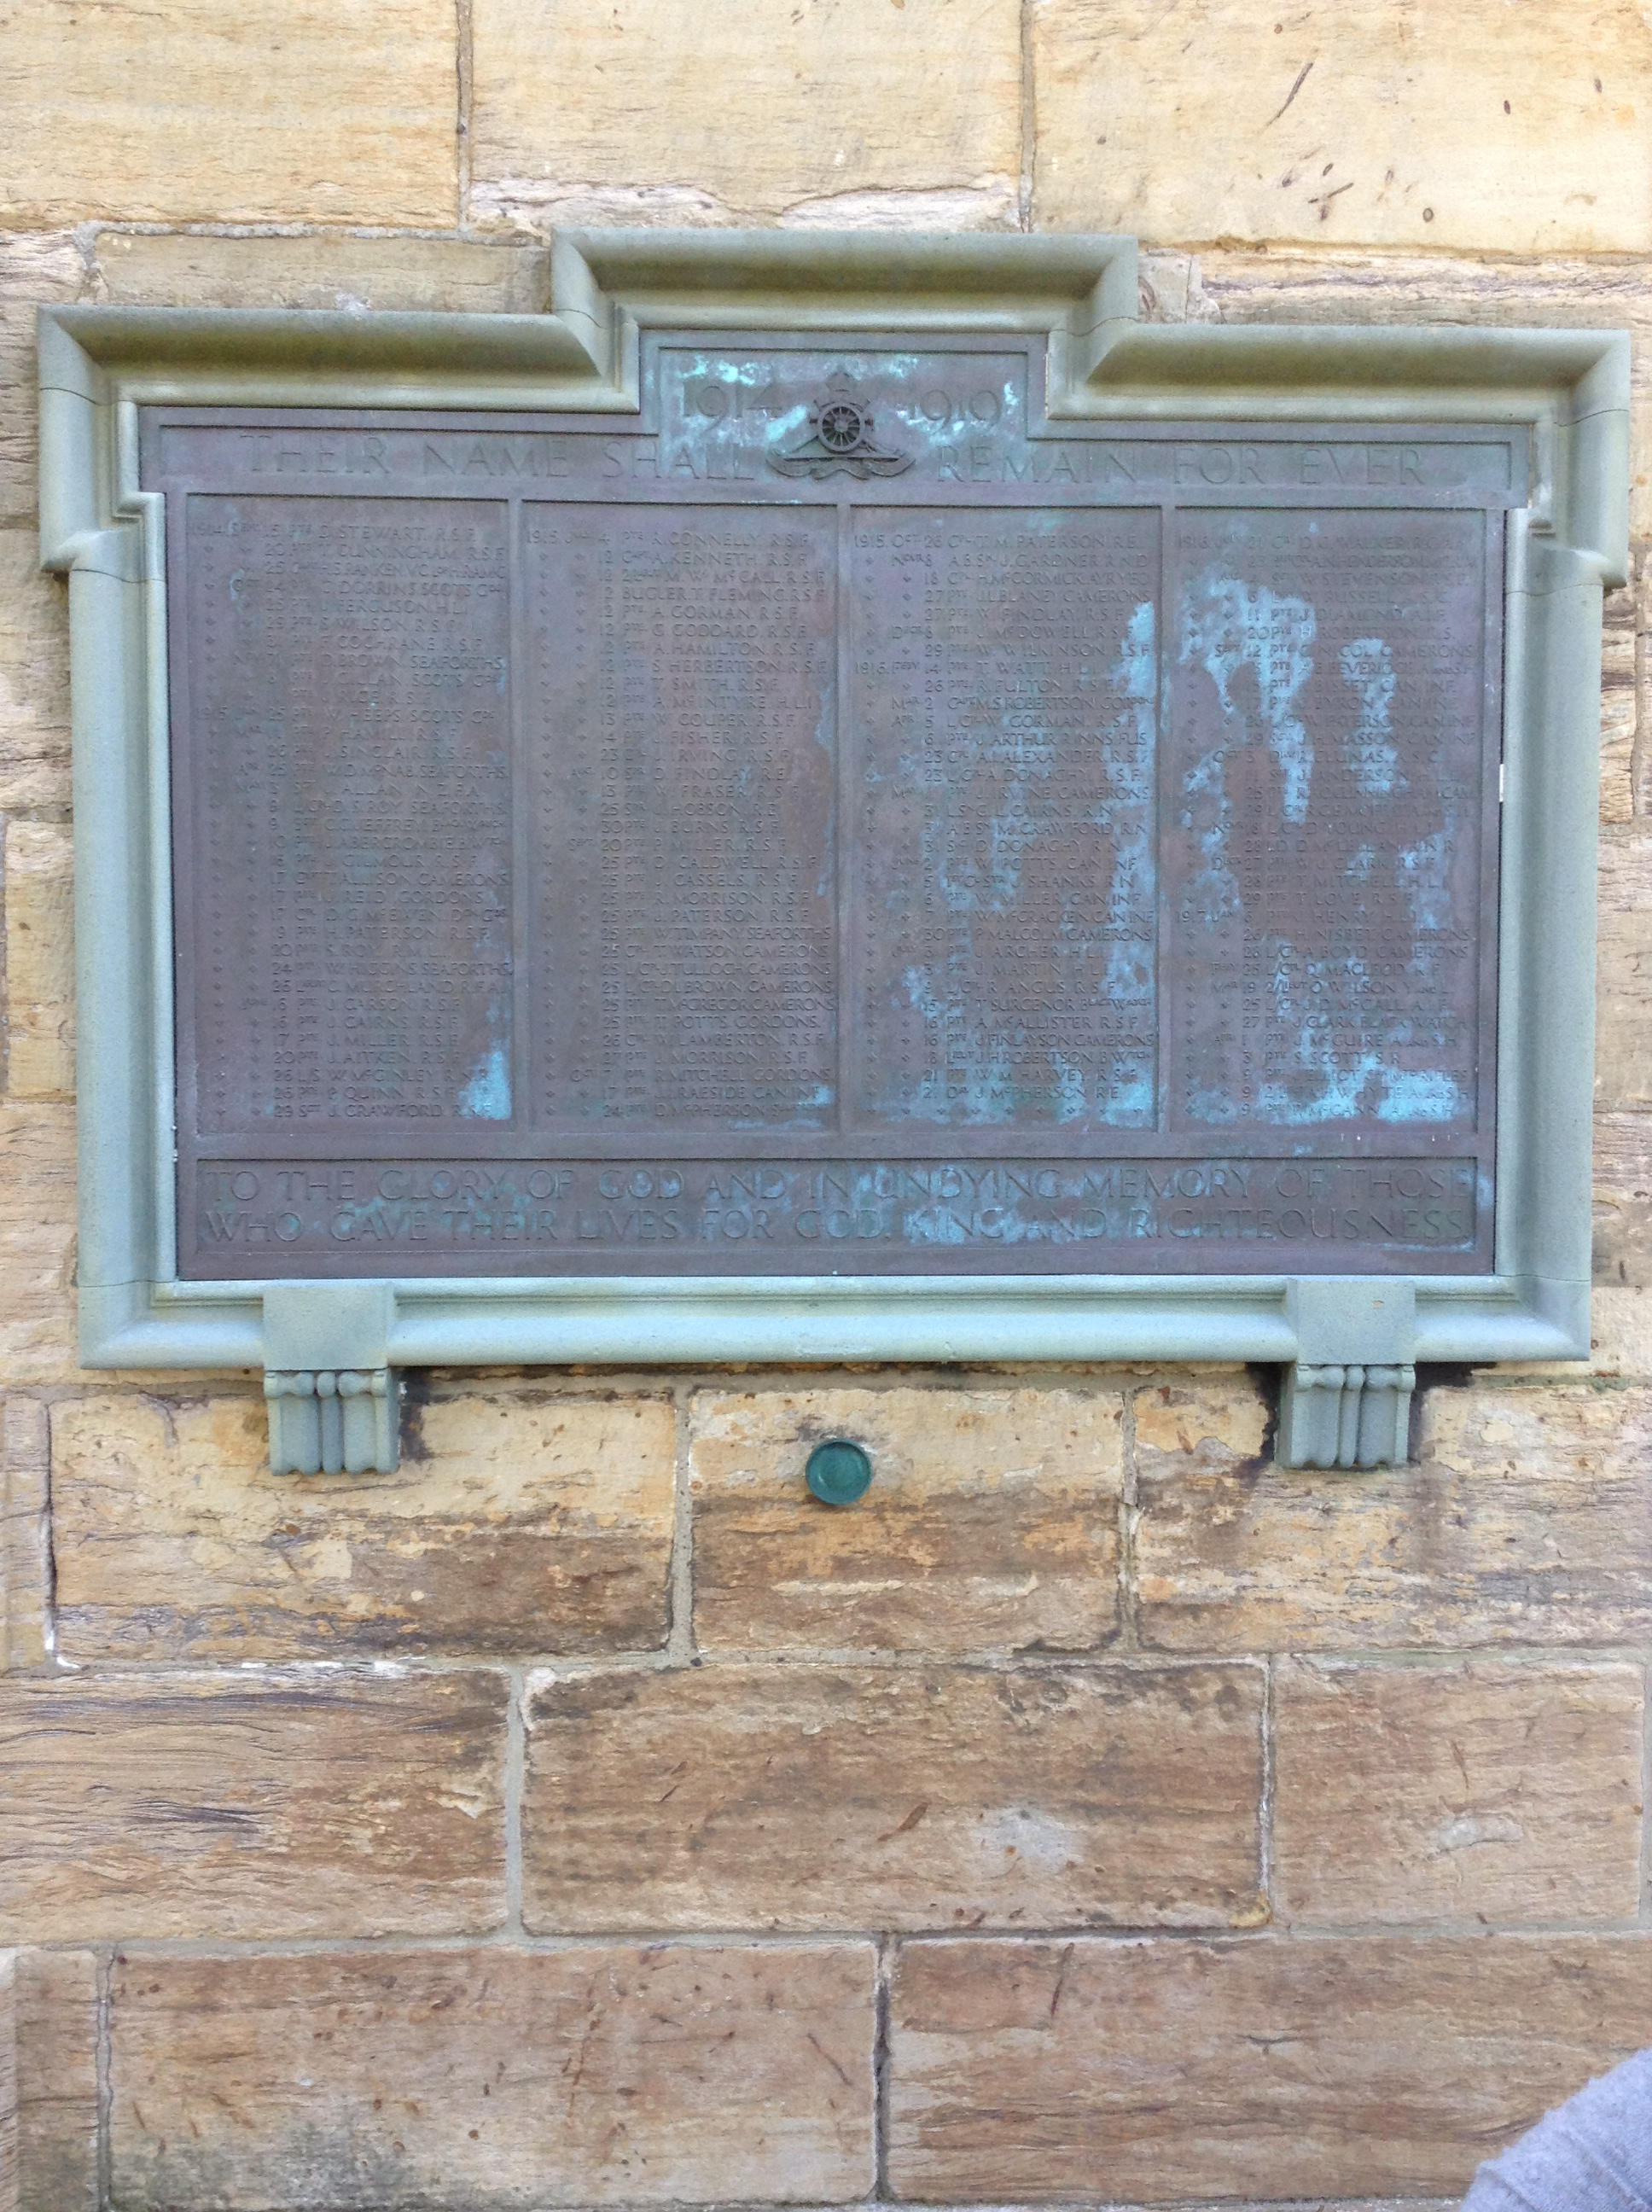 War Memorial– WWI Memorial on wall of Irvine Old Parish Church, Kirkgate, Irvine, Ayrshire, Scotland.  William Potts's name is the 19th in the third column. Image taken 24 August 2014 by Tom Tulloch.